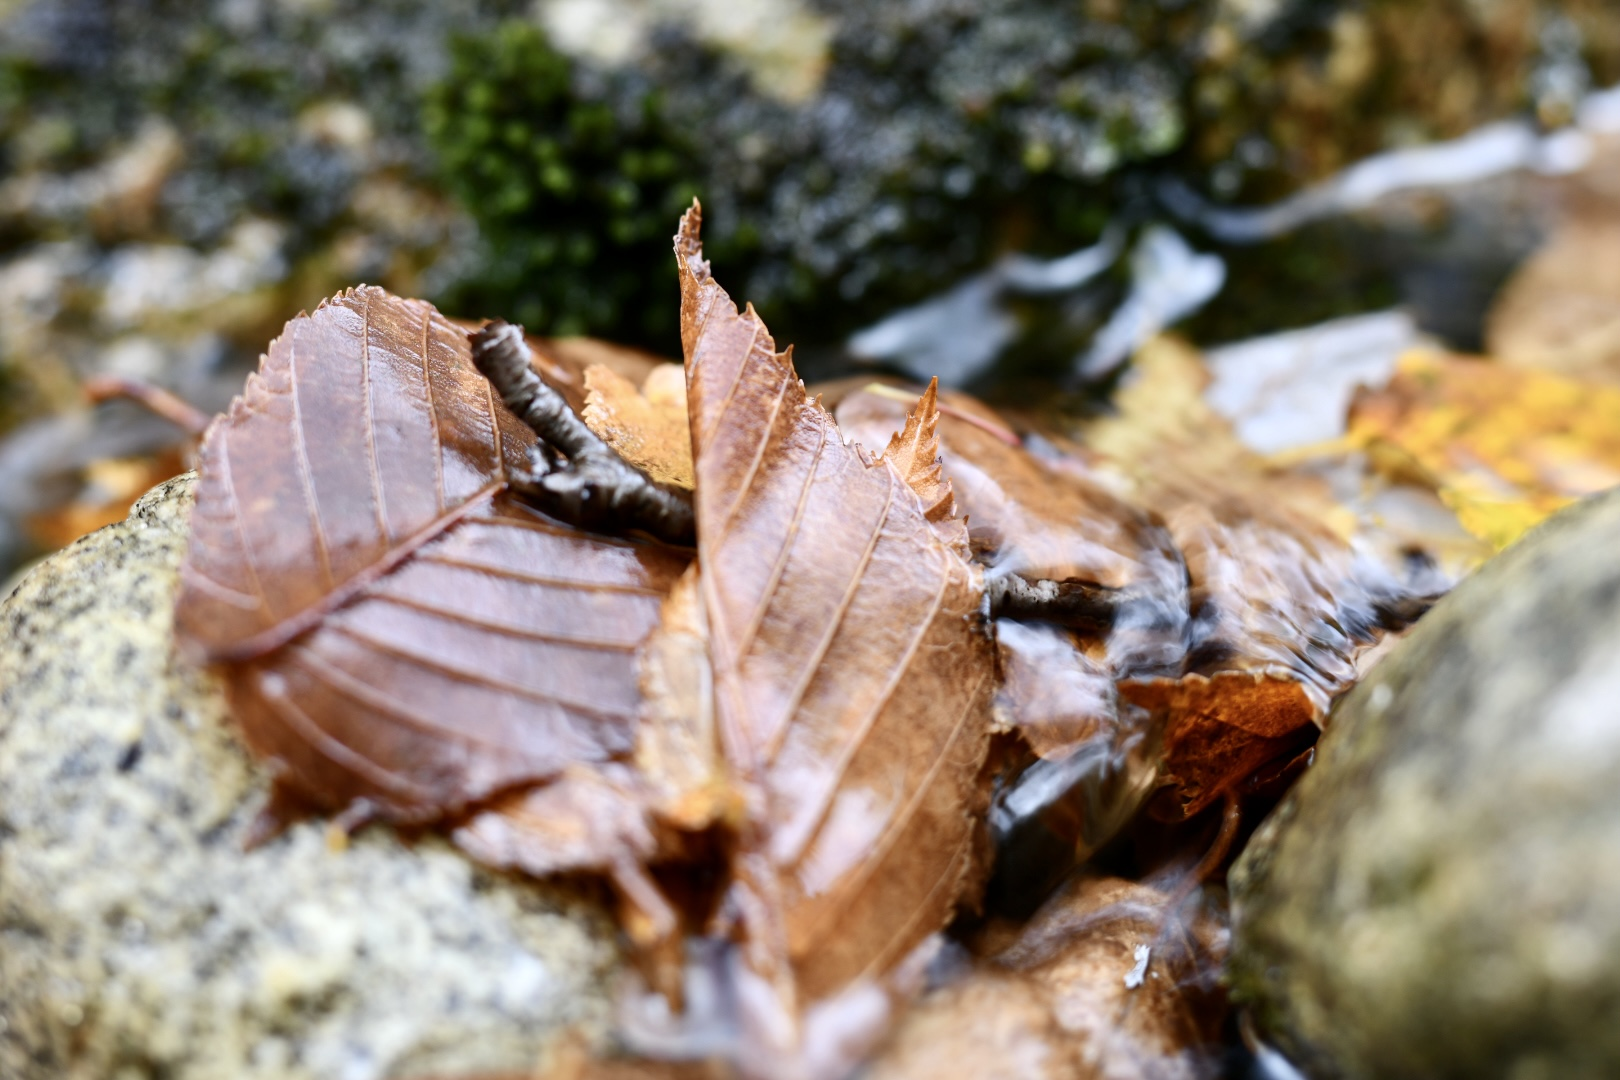 Pile of autumn leaves caught on mossy river rocks. 2021. Taryn Okesson. Digital Photography. White Mountain National Forest, New Hampshire.